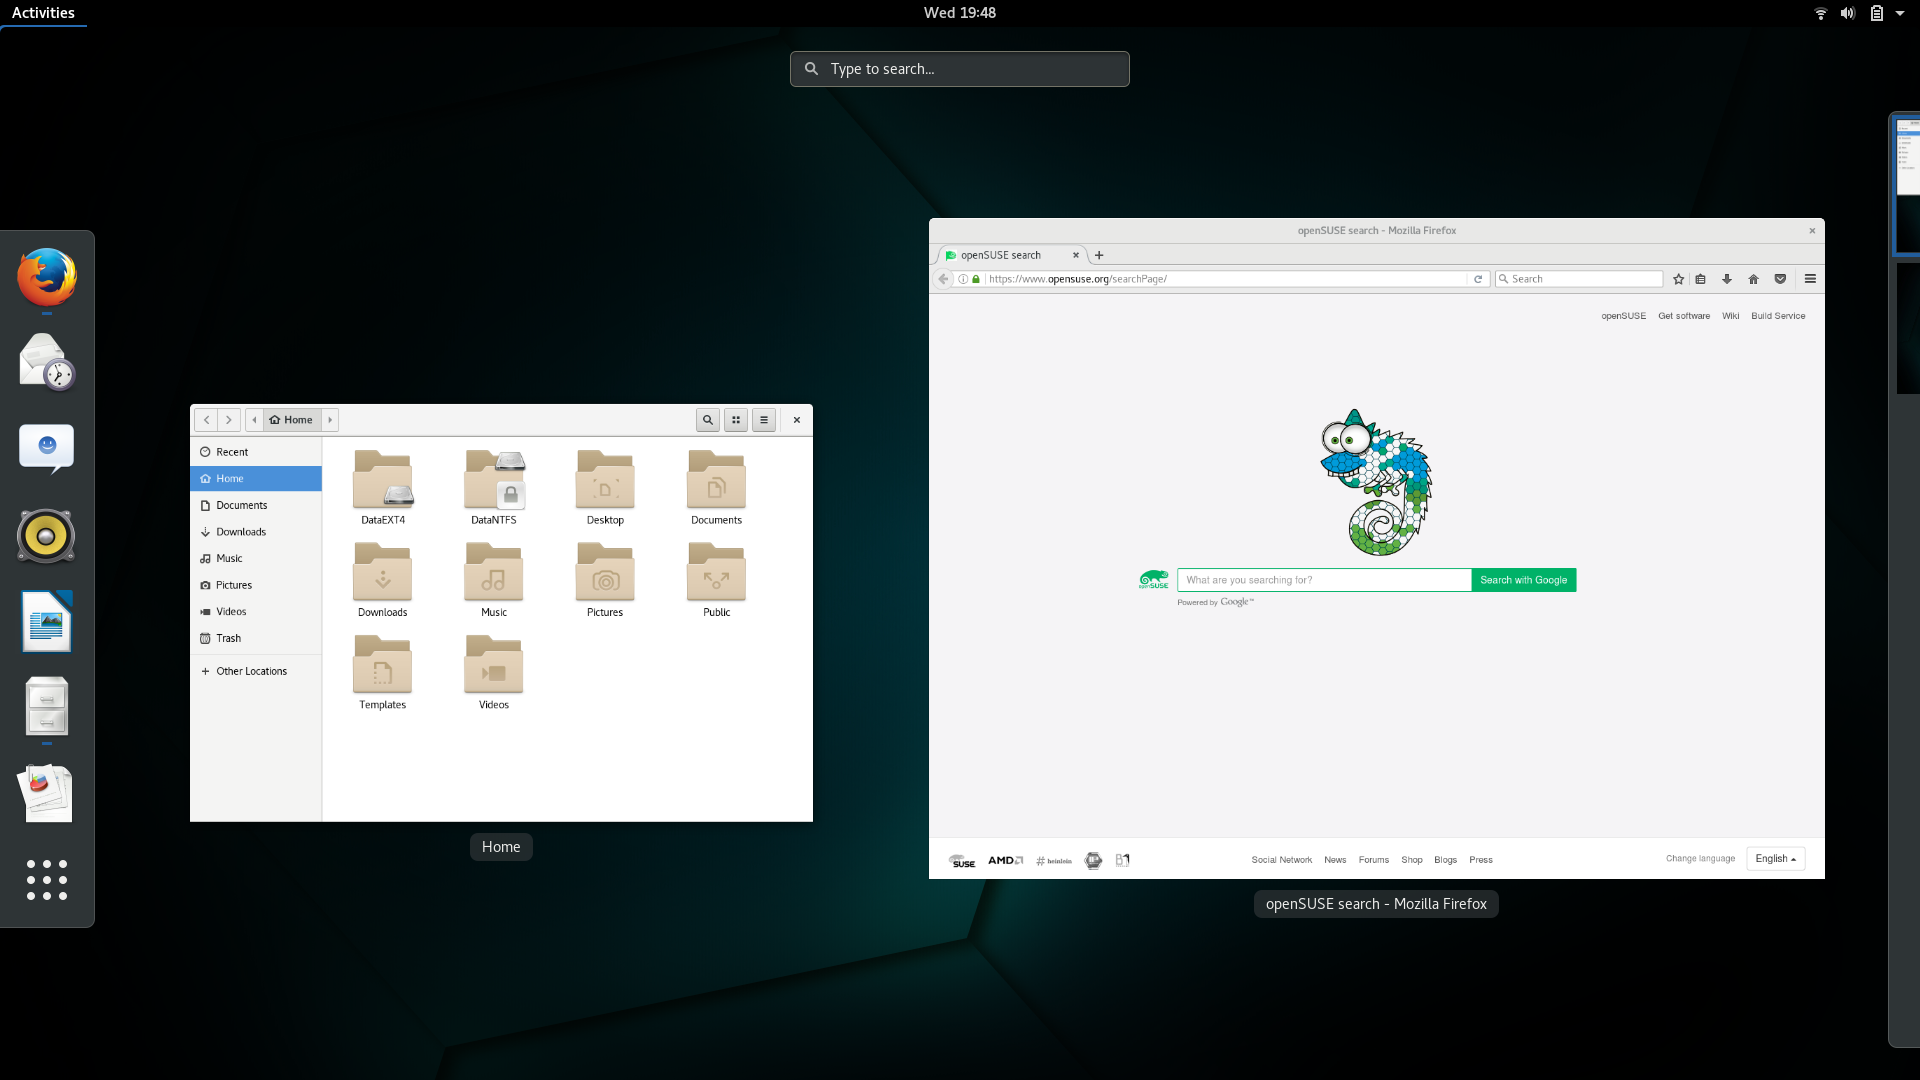 openSUSE Tumbleweed [Snapshot 20161204] Review | ORDINATECHNIC